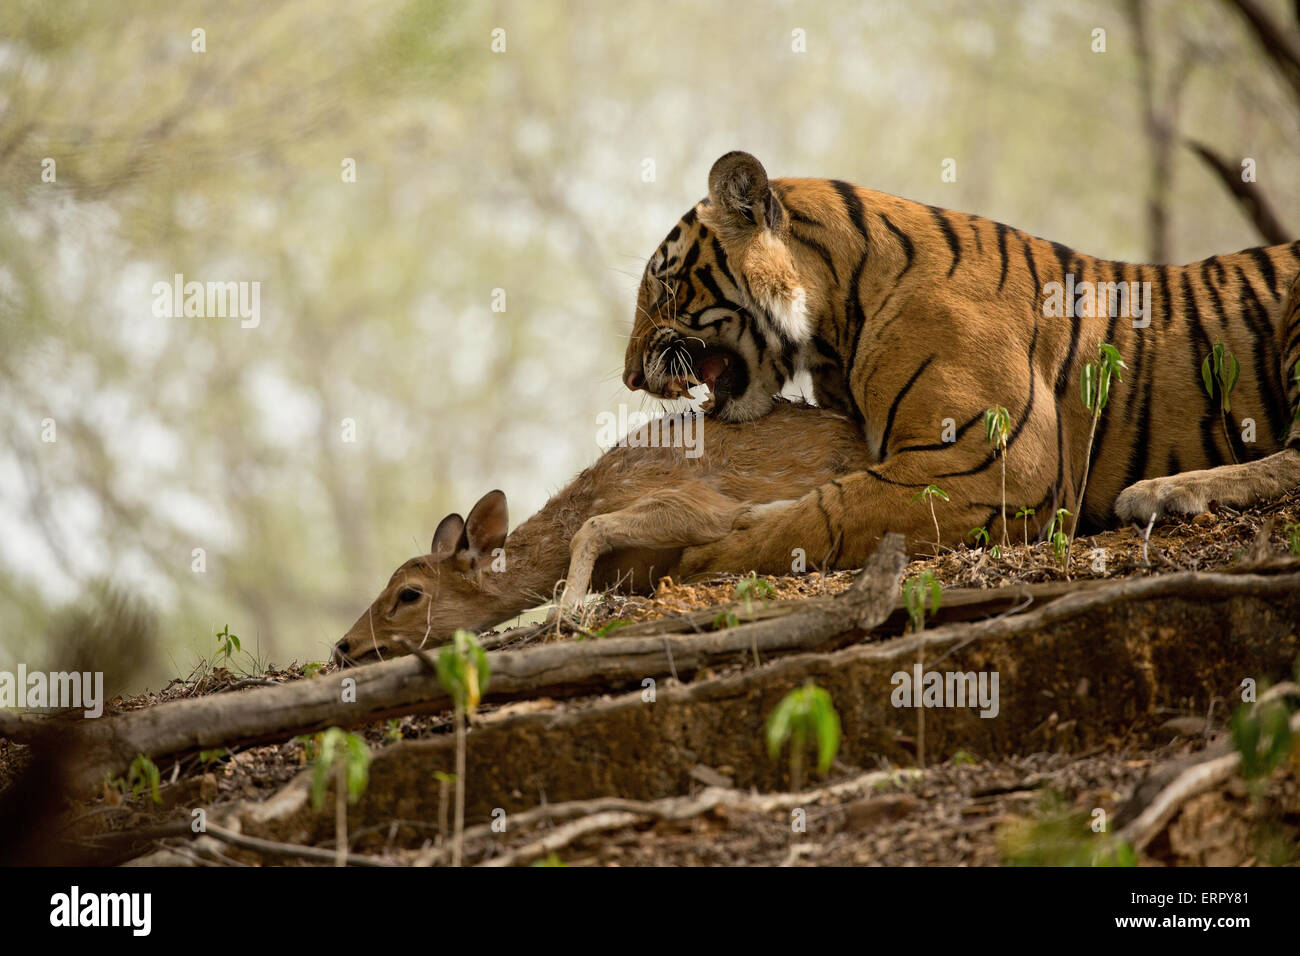 A tiger snarls after catching its prey - Stock Image